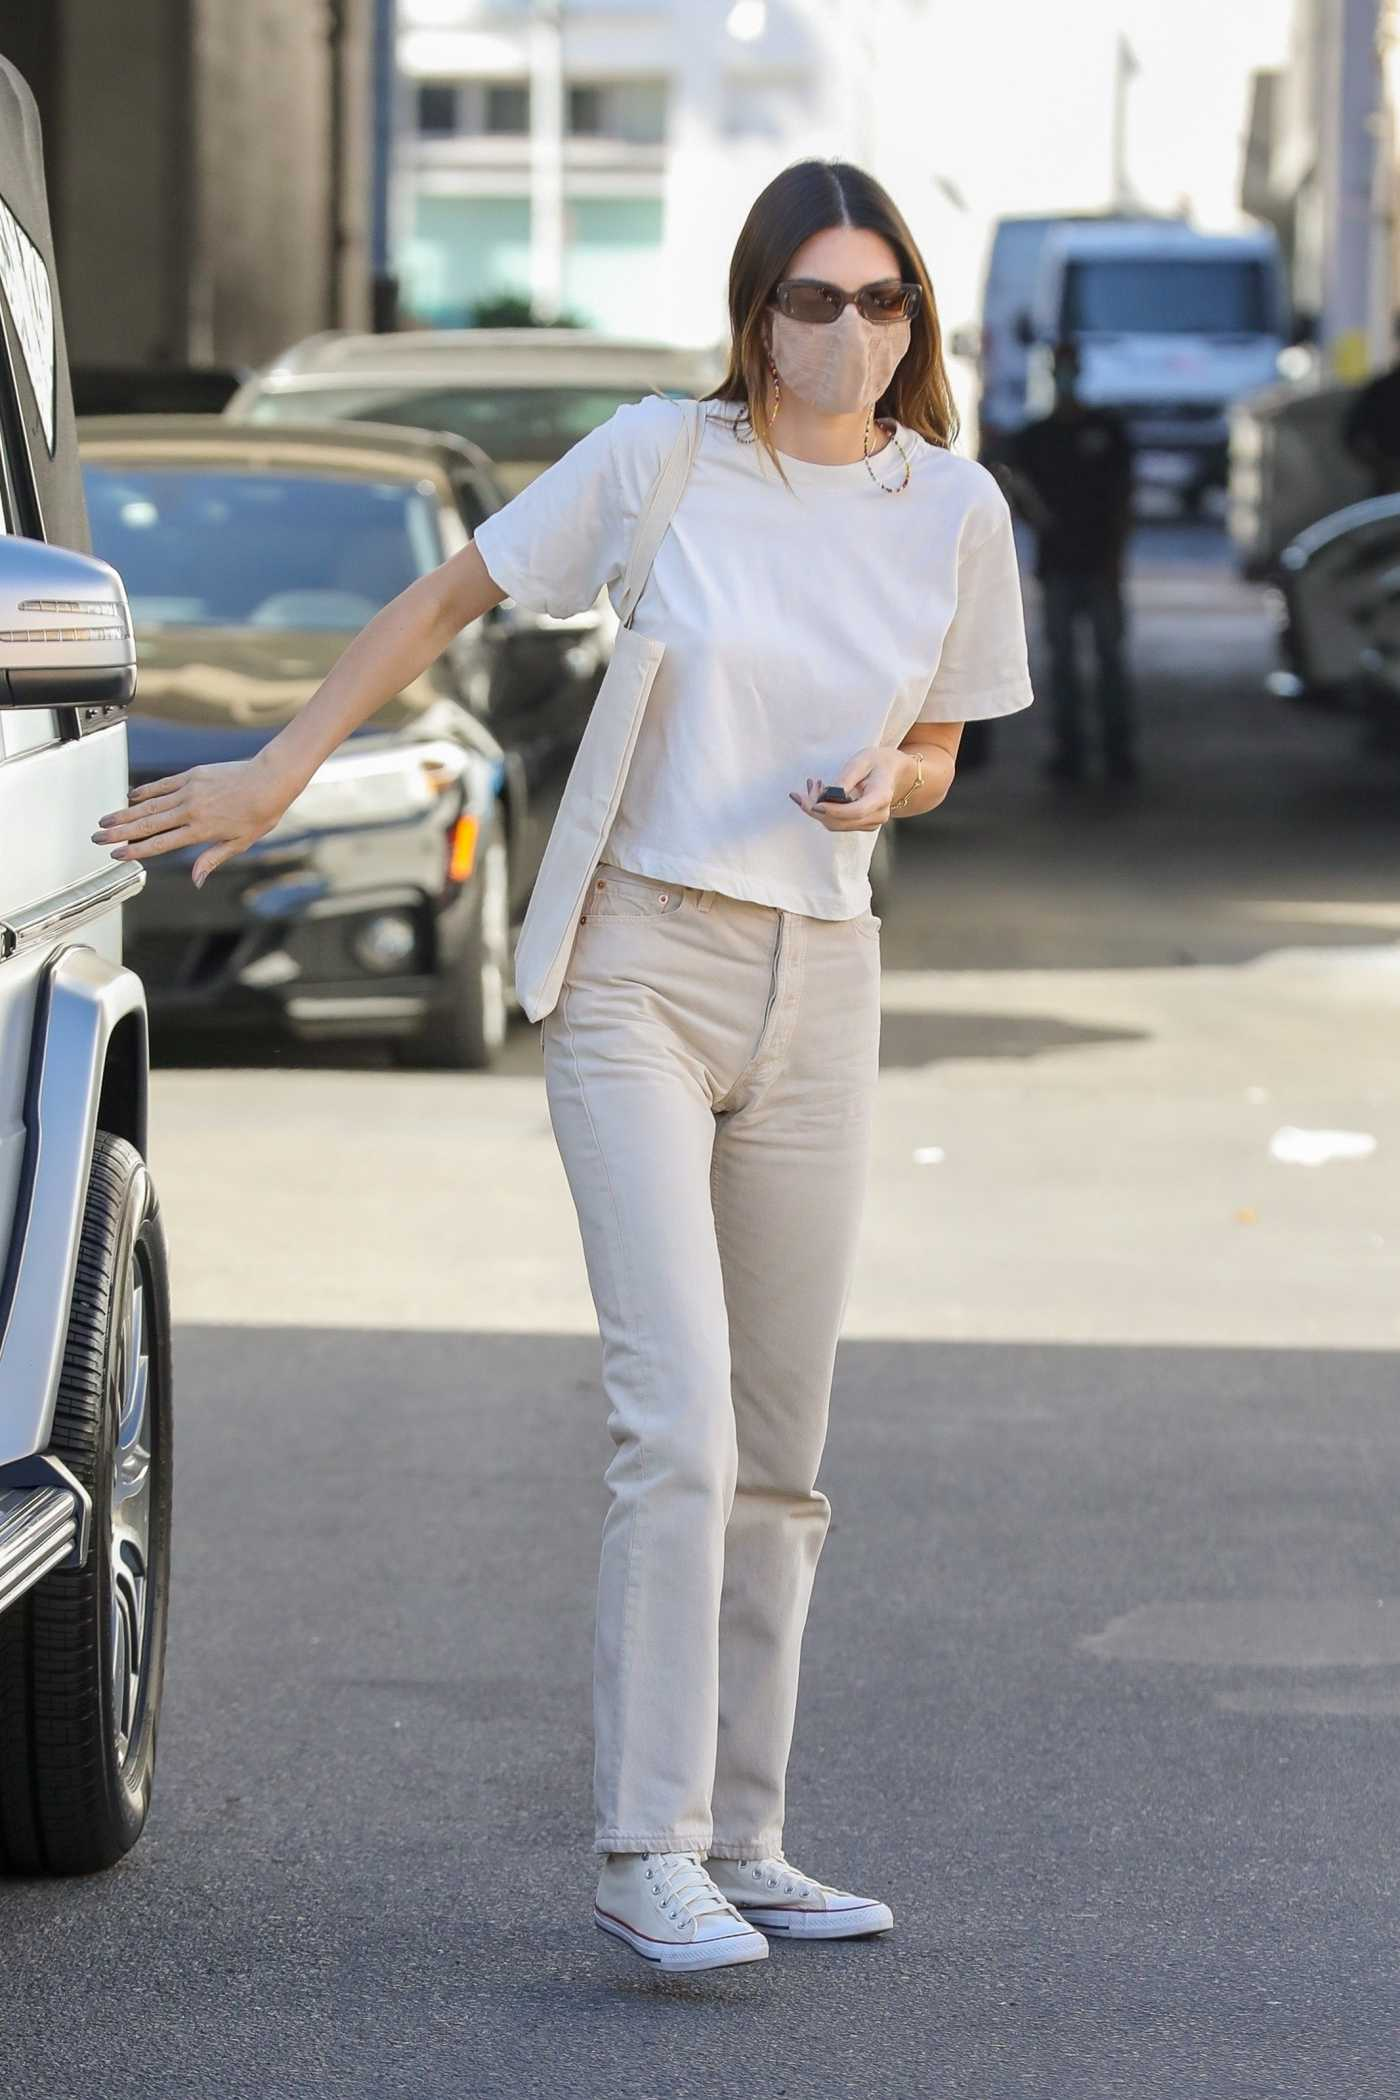 Kendall Jenner in a White Tee Was Seen Out in Beverly Hills 02/25/2021